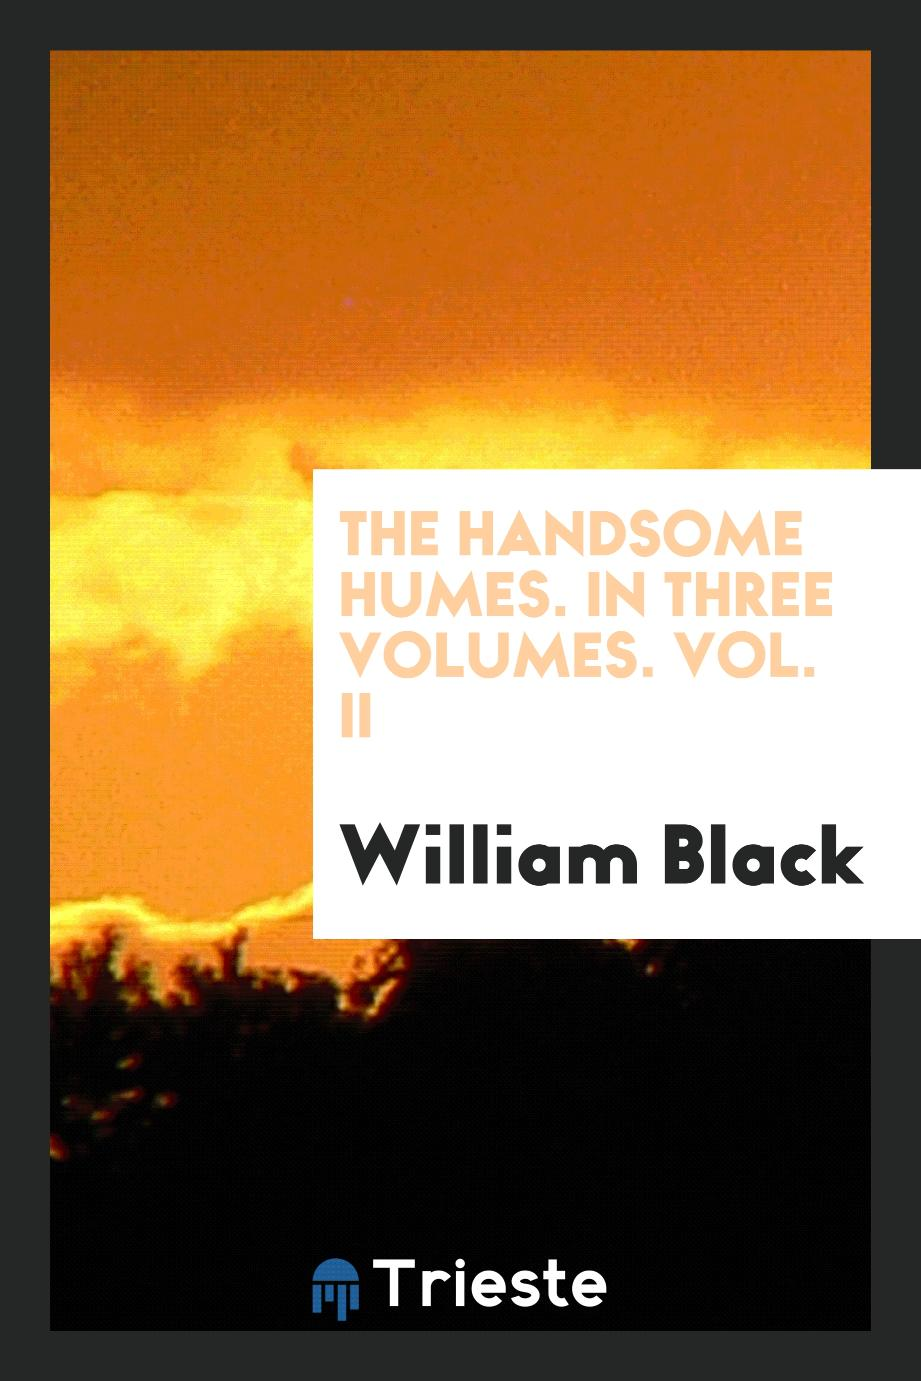 The handsome Humes. In three volumes. Vol. II